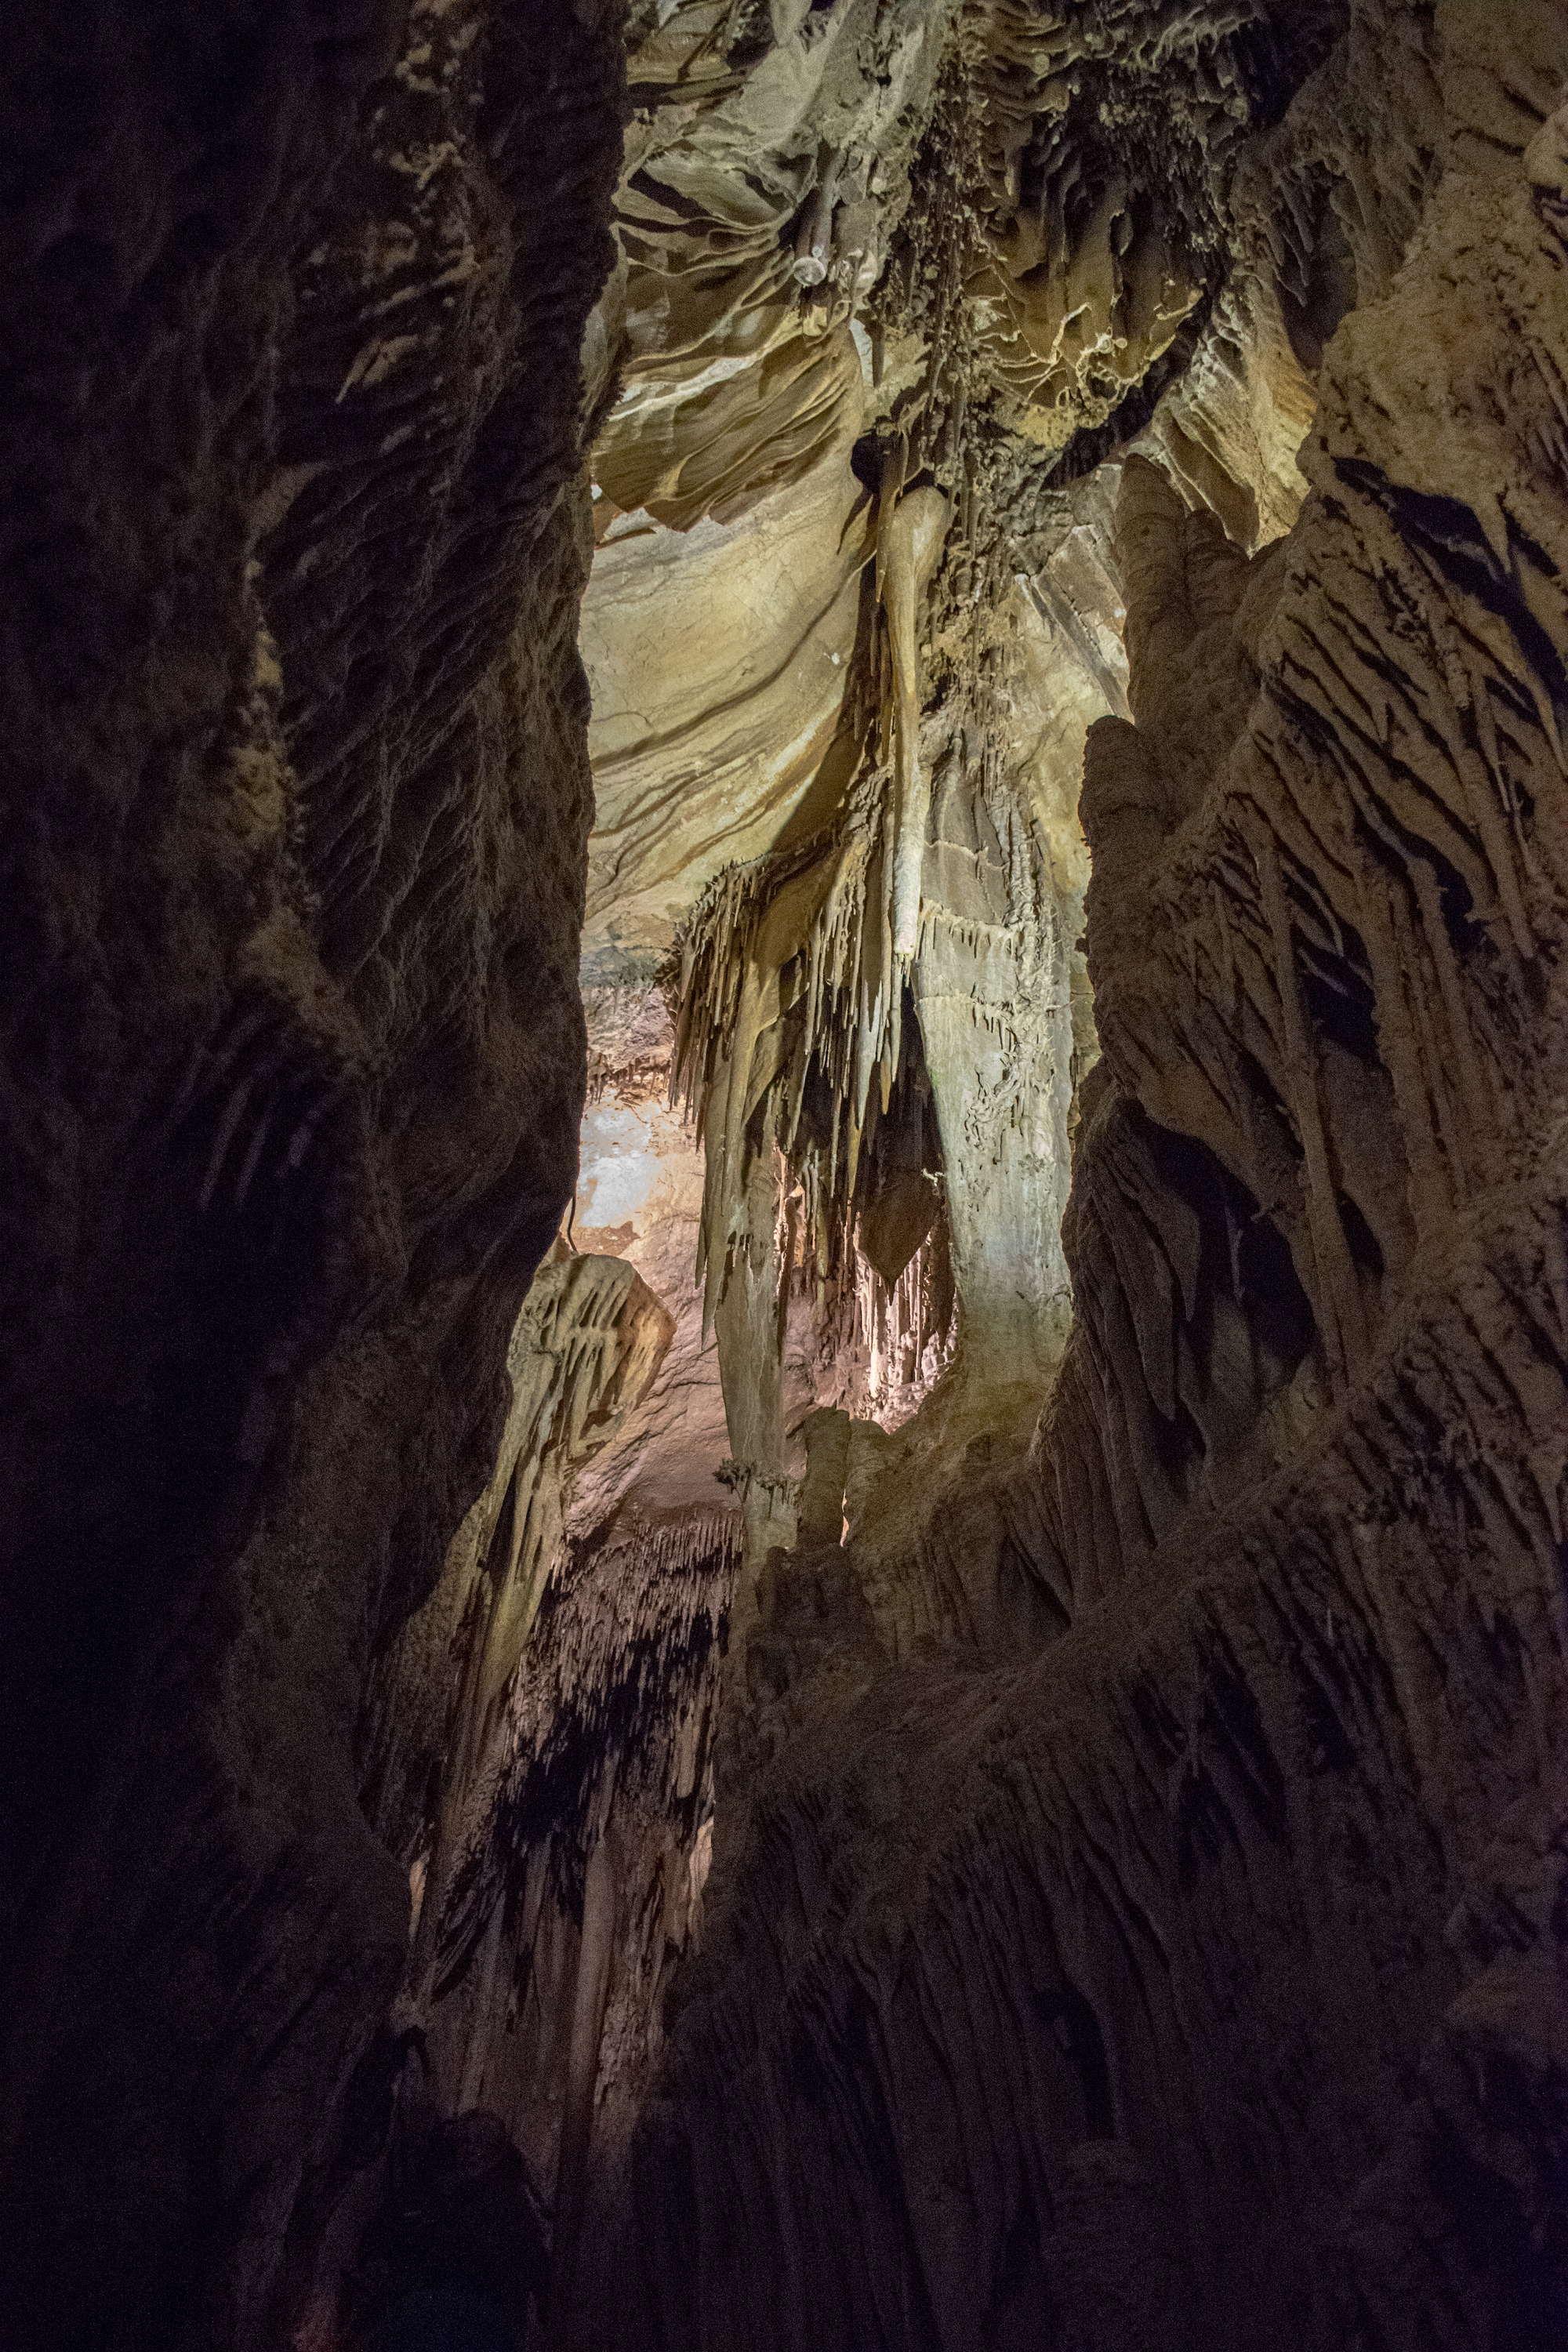 Stalactites in Lehman Caves